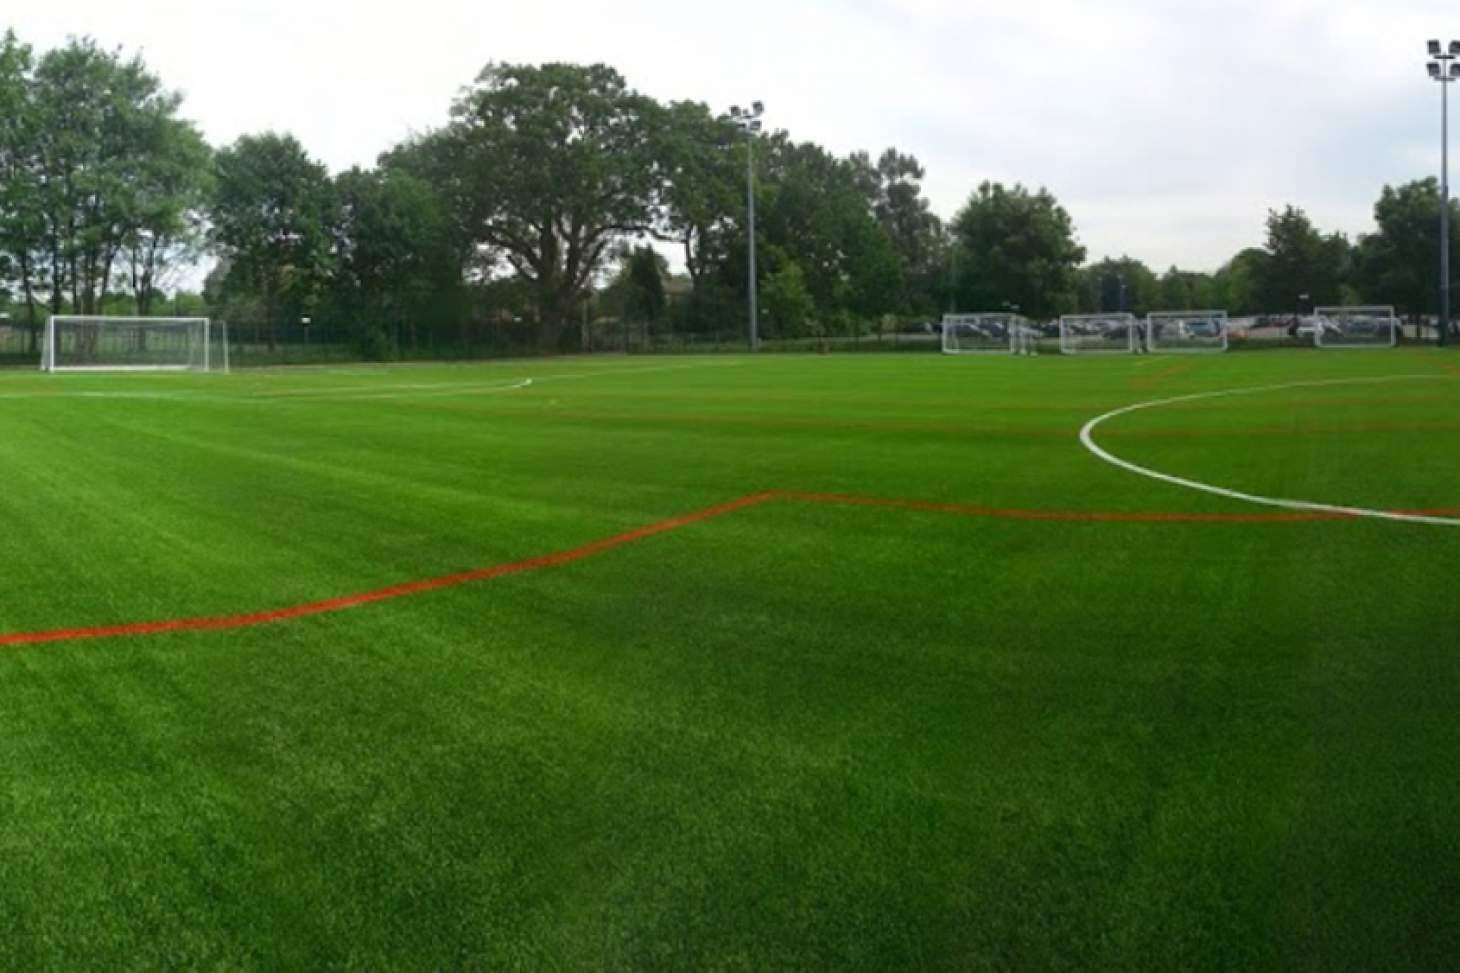 PlayFootball Bracknell 6 a side | 3G Astroturf football pitch